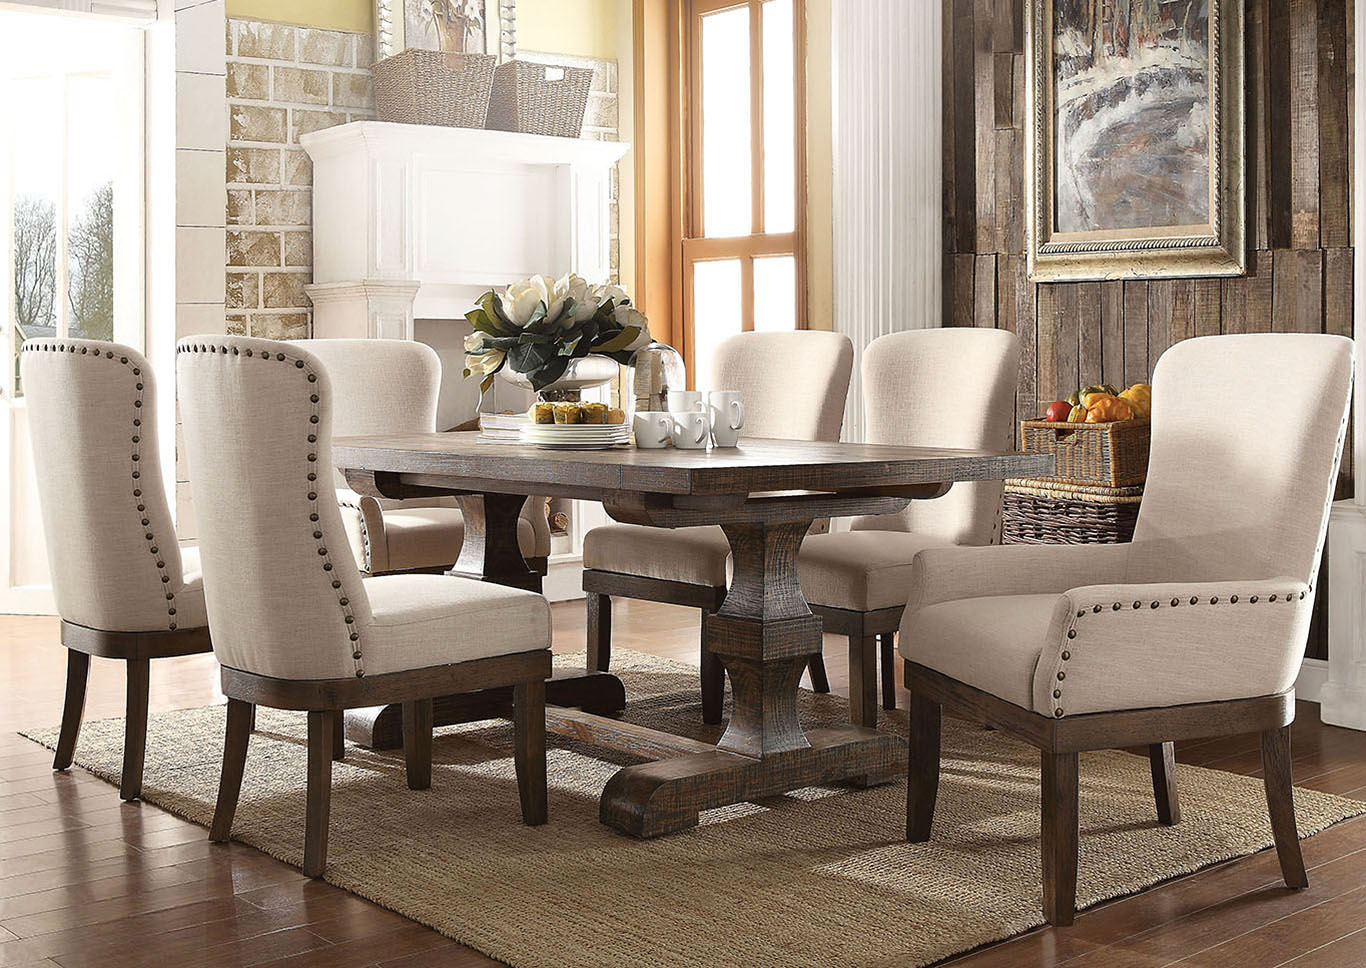 Landon Salvage Brown Extendable Dining Table w/2 Arm & 4 Side Chair,Acme